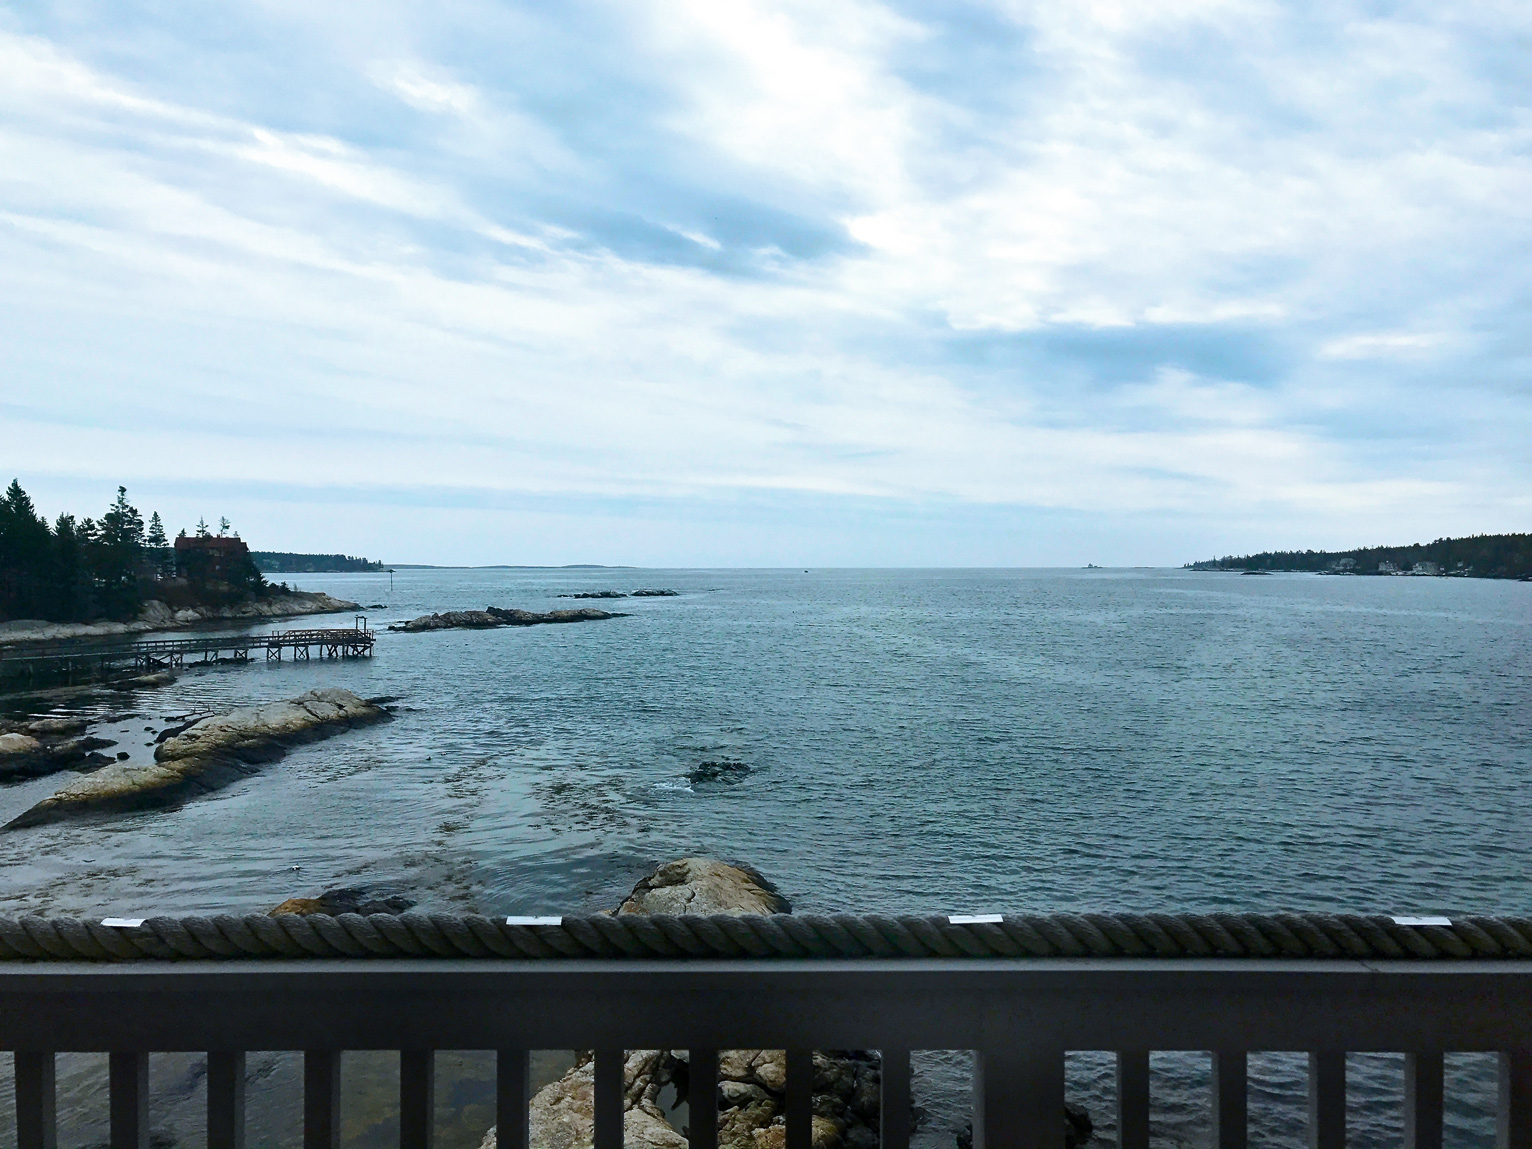 Better_View-from-master-bedroom-deck-EDIT_IMG_1096.jpg